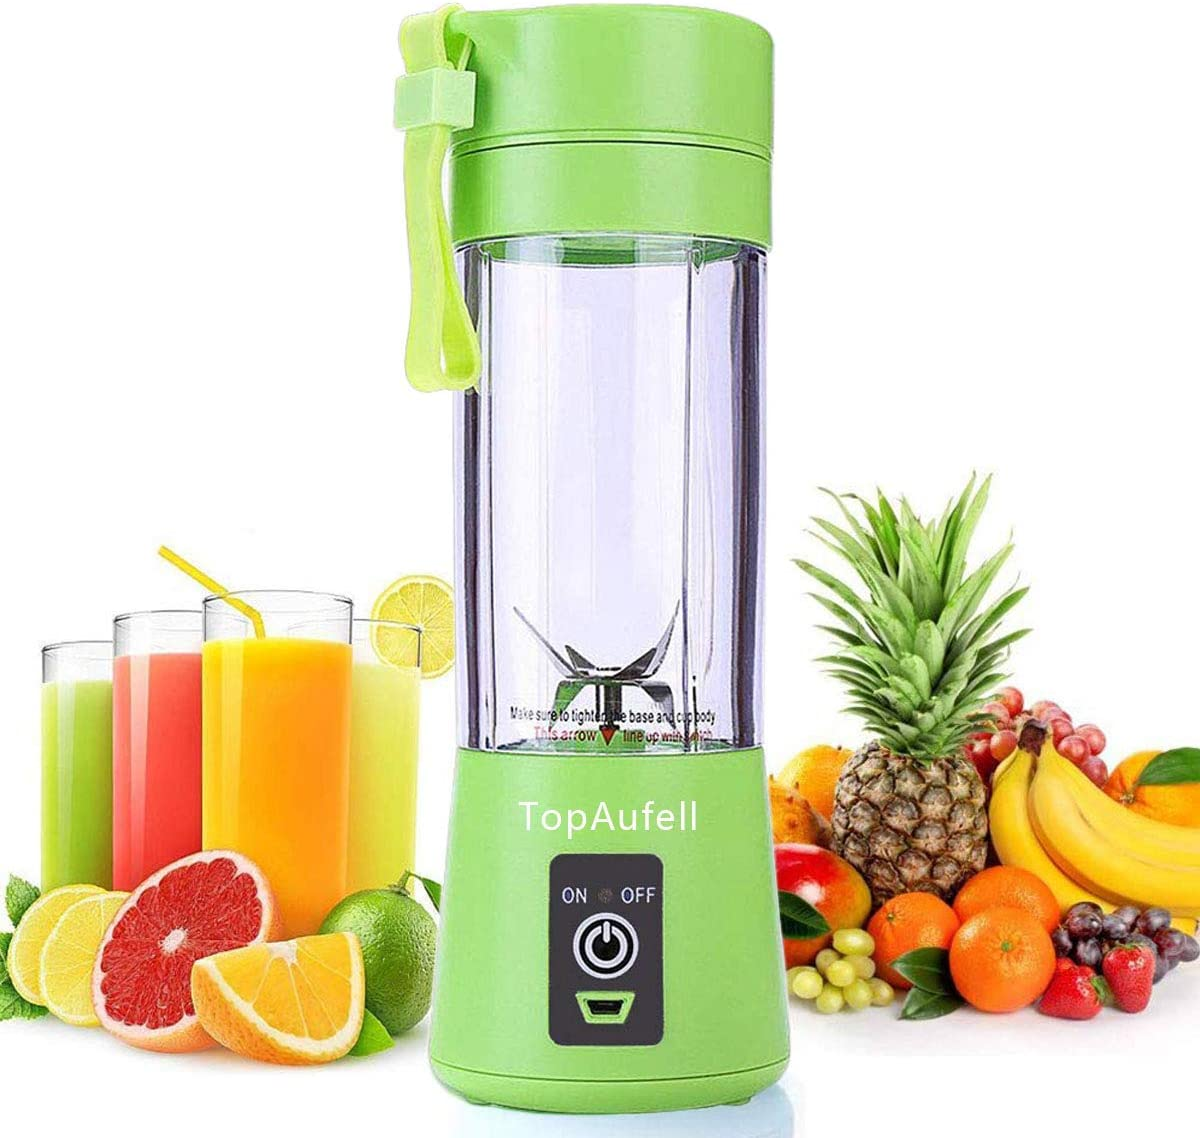 Personal Blender, Portable Juicer Cup/Electric Fruit Mixer/USB Juice Blender, Rechargeable, Six Blades In 3D For Superb Mixing, 380mL - (Green)